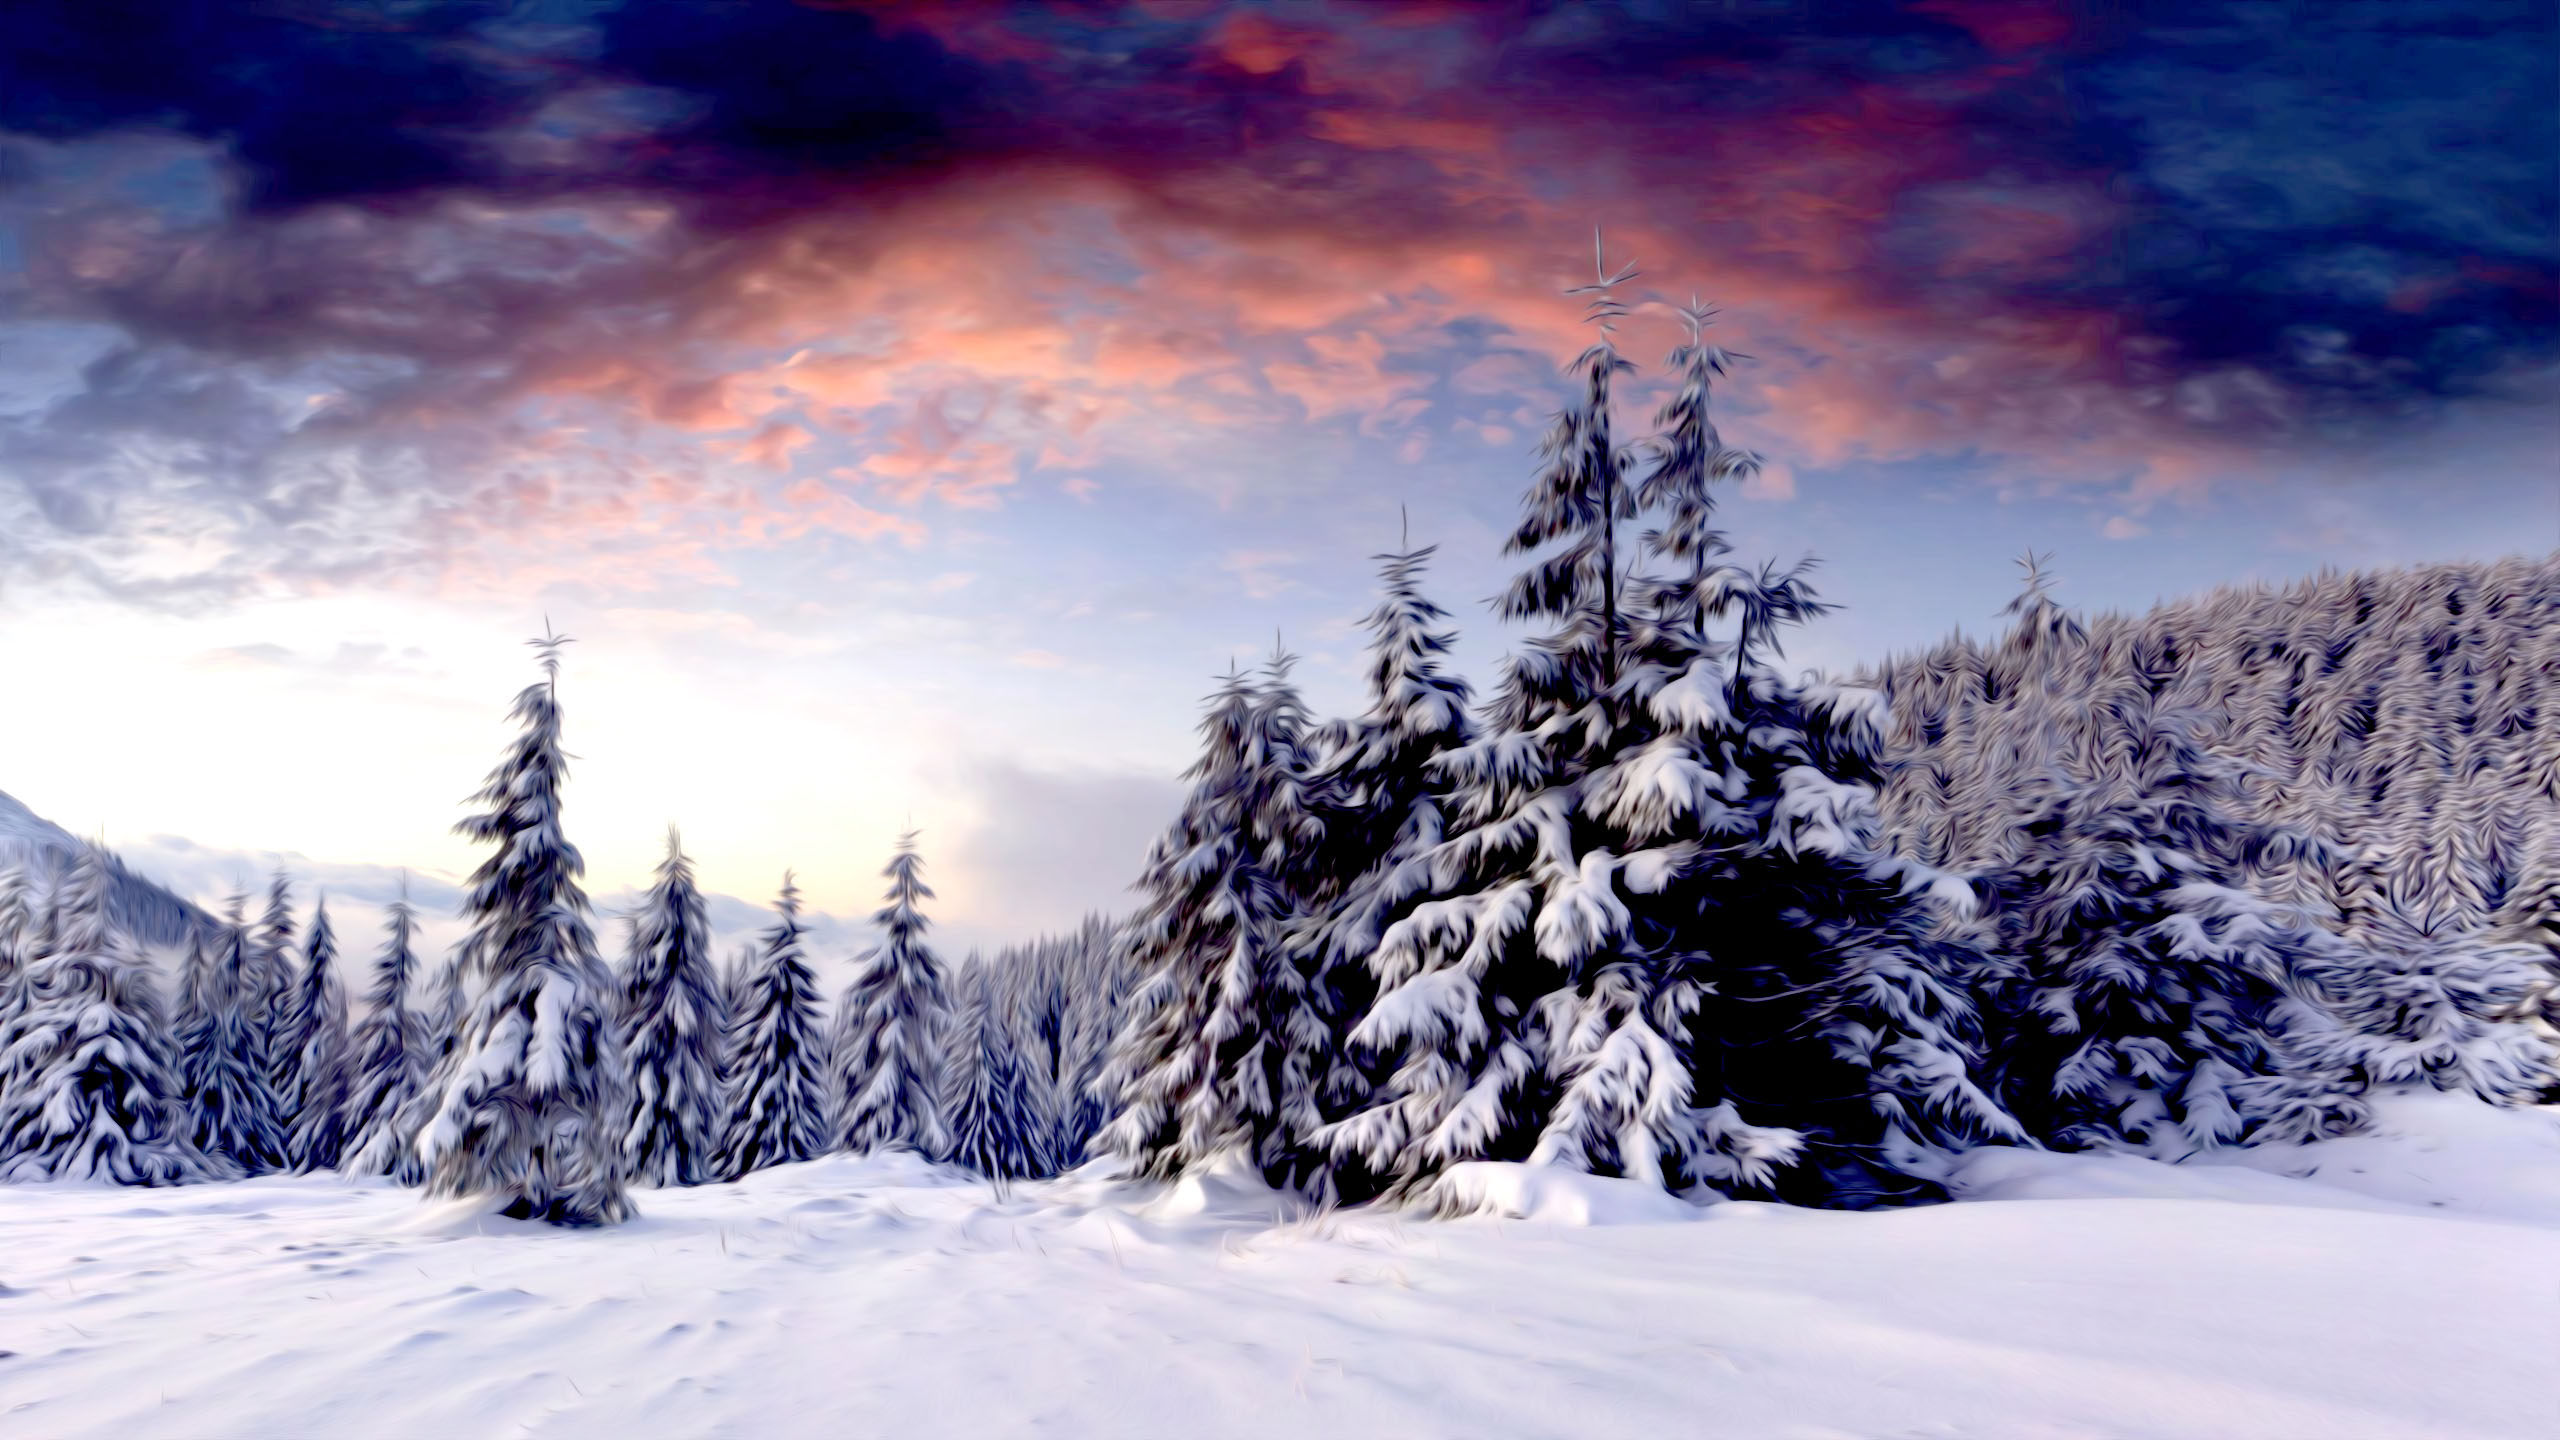 snow scenery full hd - photo #23